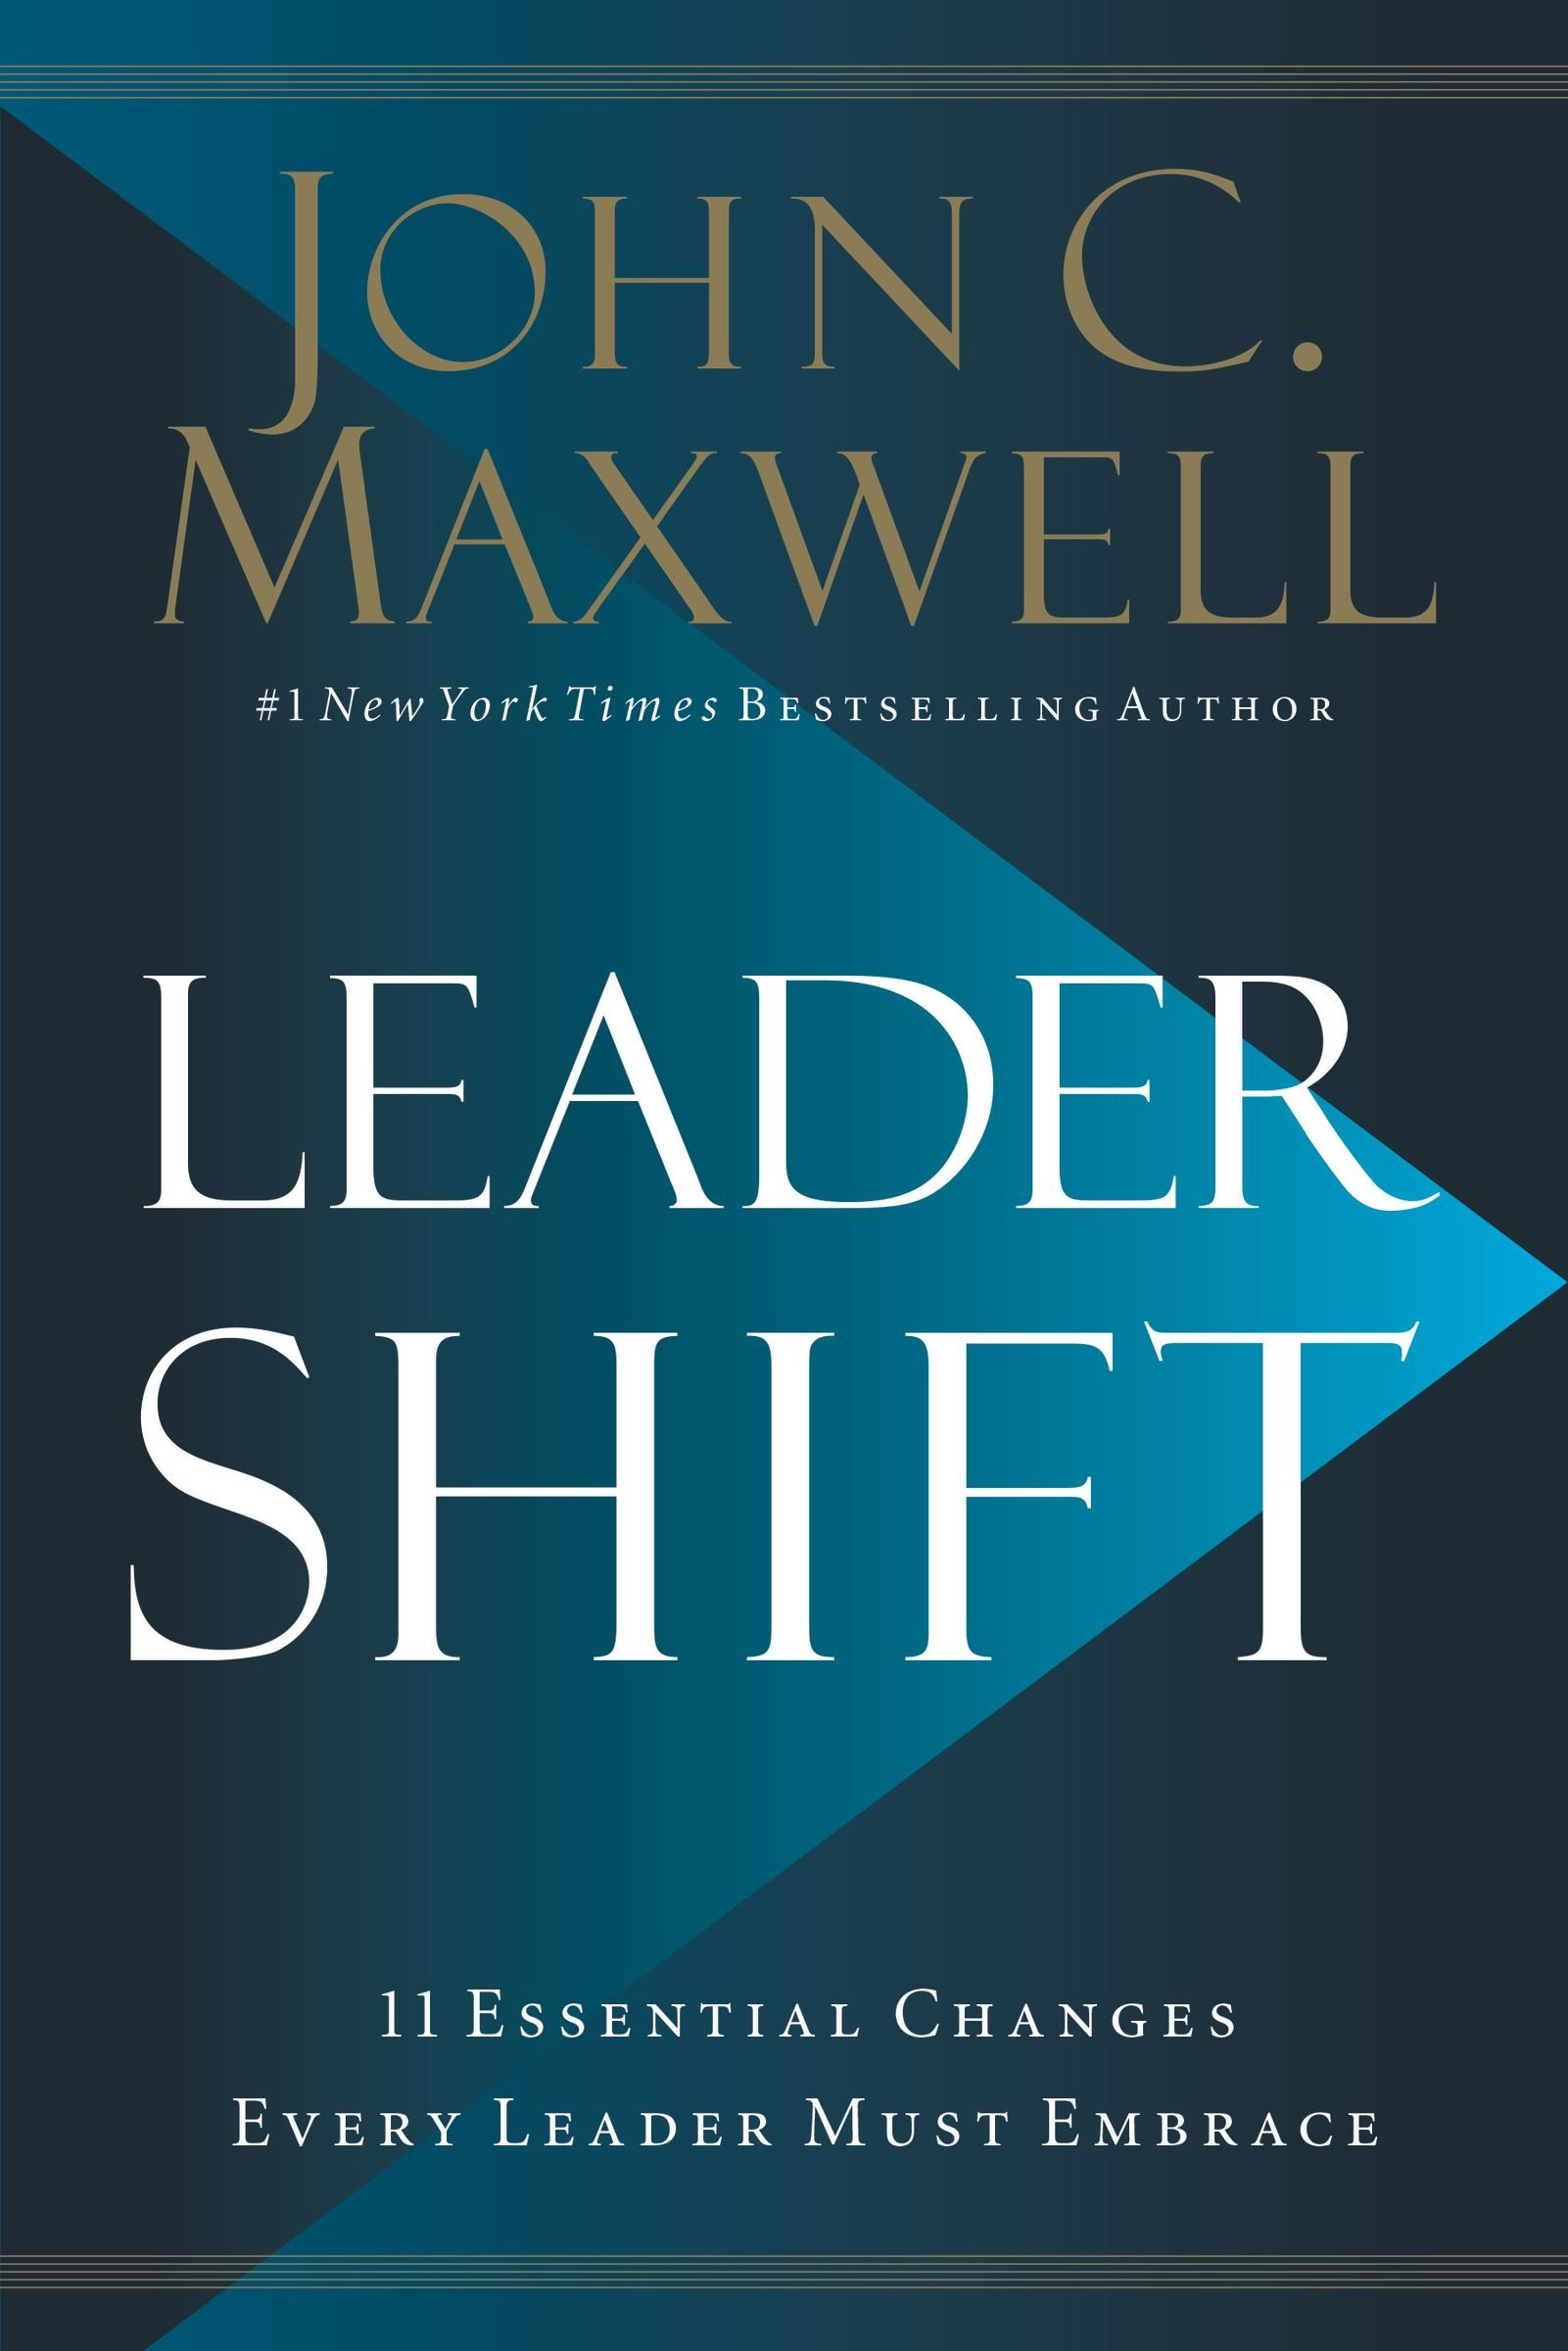 Leadershift: The 11 Essential Changes Every Leader Must Embrace by HarperCollins Christian Pub.